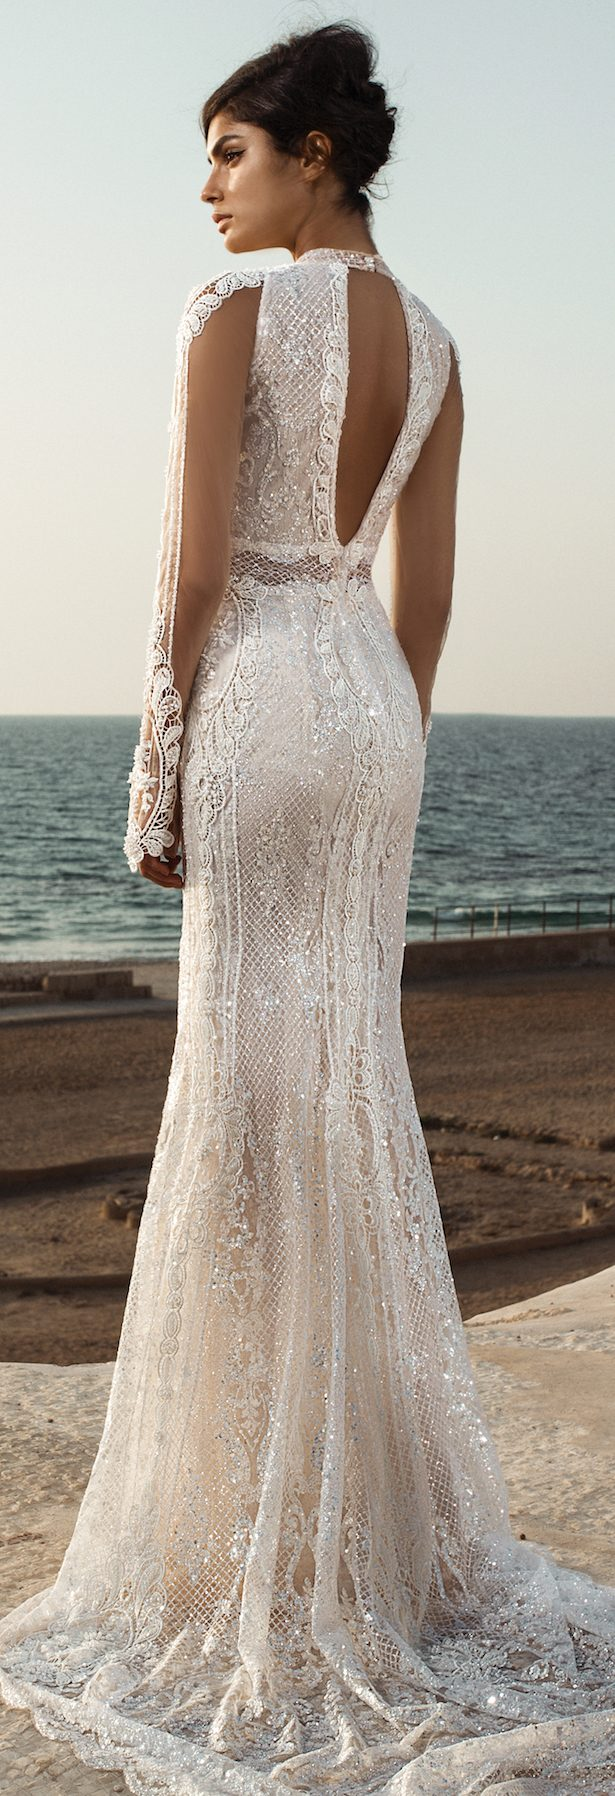 Best Wedding Dresses of 2017 - Wedding Dress - GALA Collection NO. III by Galia Lahav